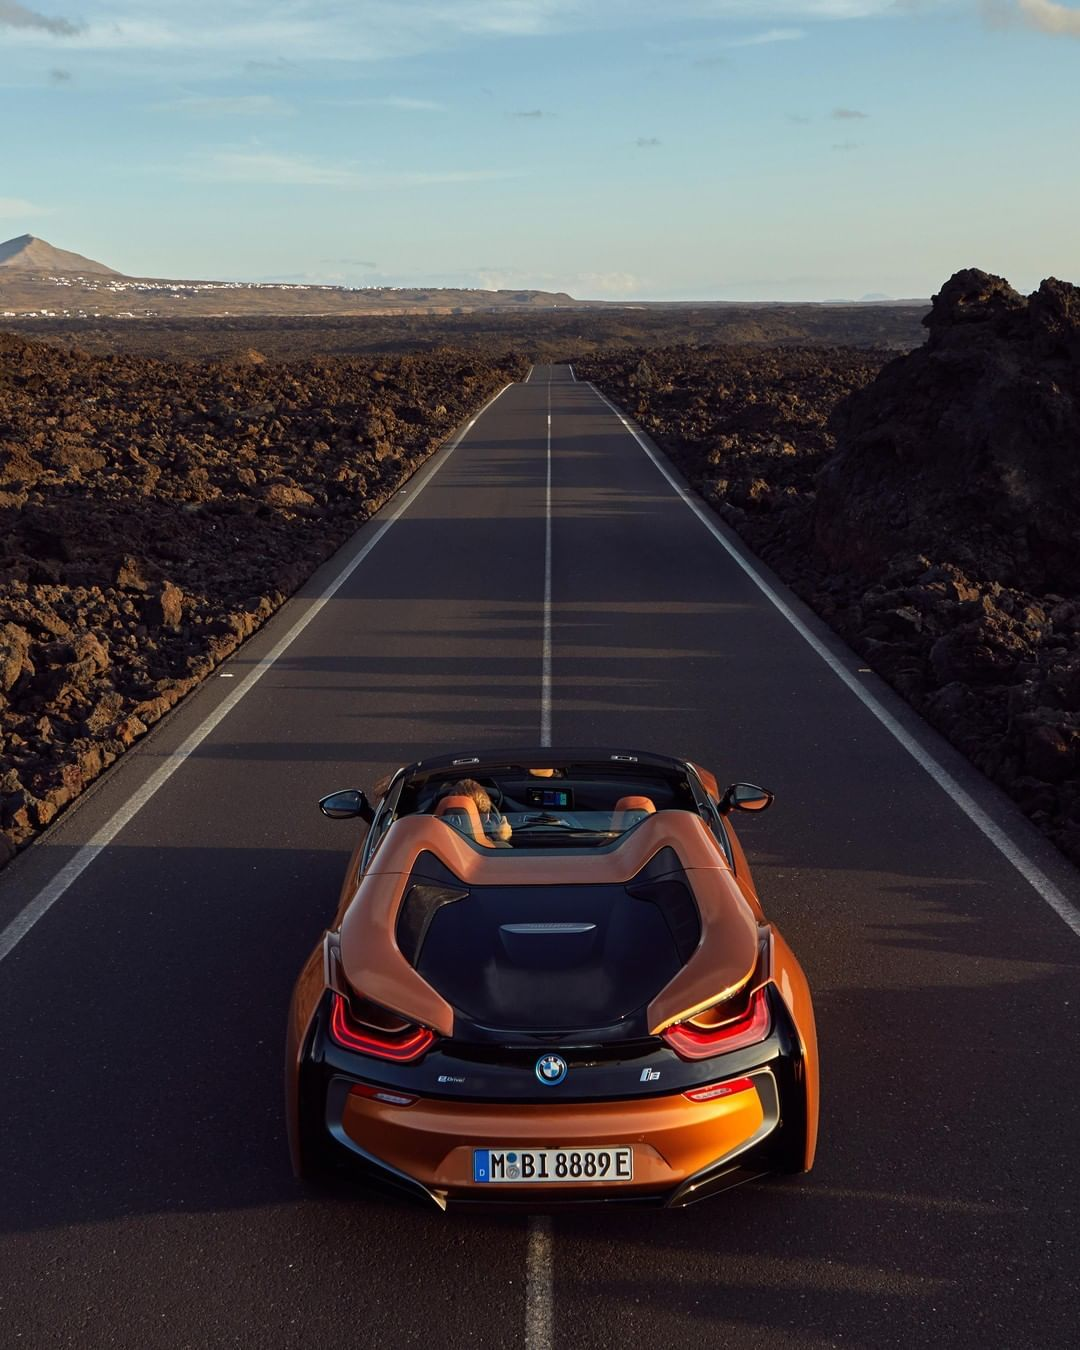 Bmw On Instagram Ready To Take Your Breath Away The Bmw I8